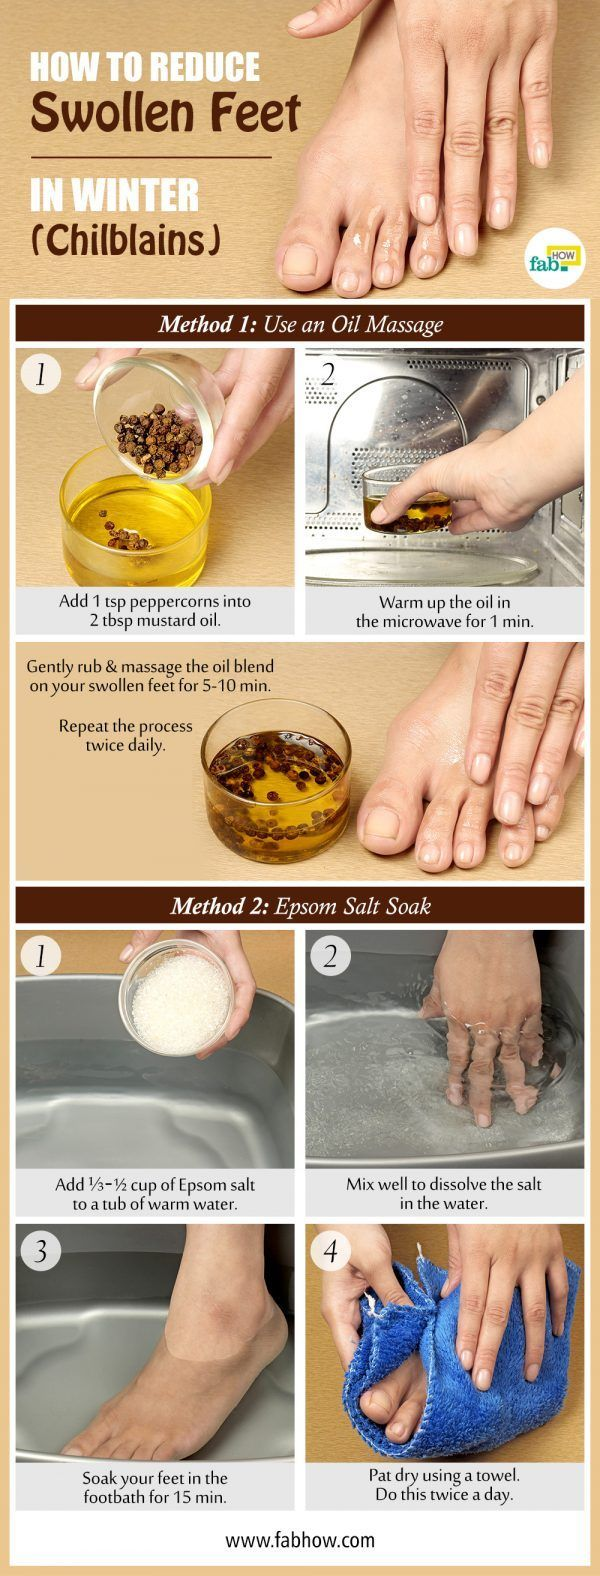 94799378978b9adb2101ab609578d57c - How To Get Rid Of Swollen Toes In Winter